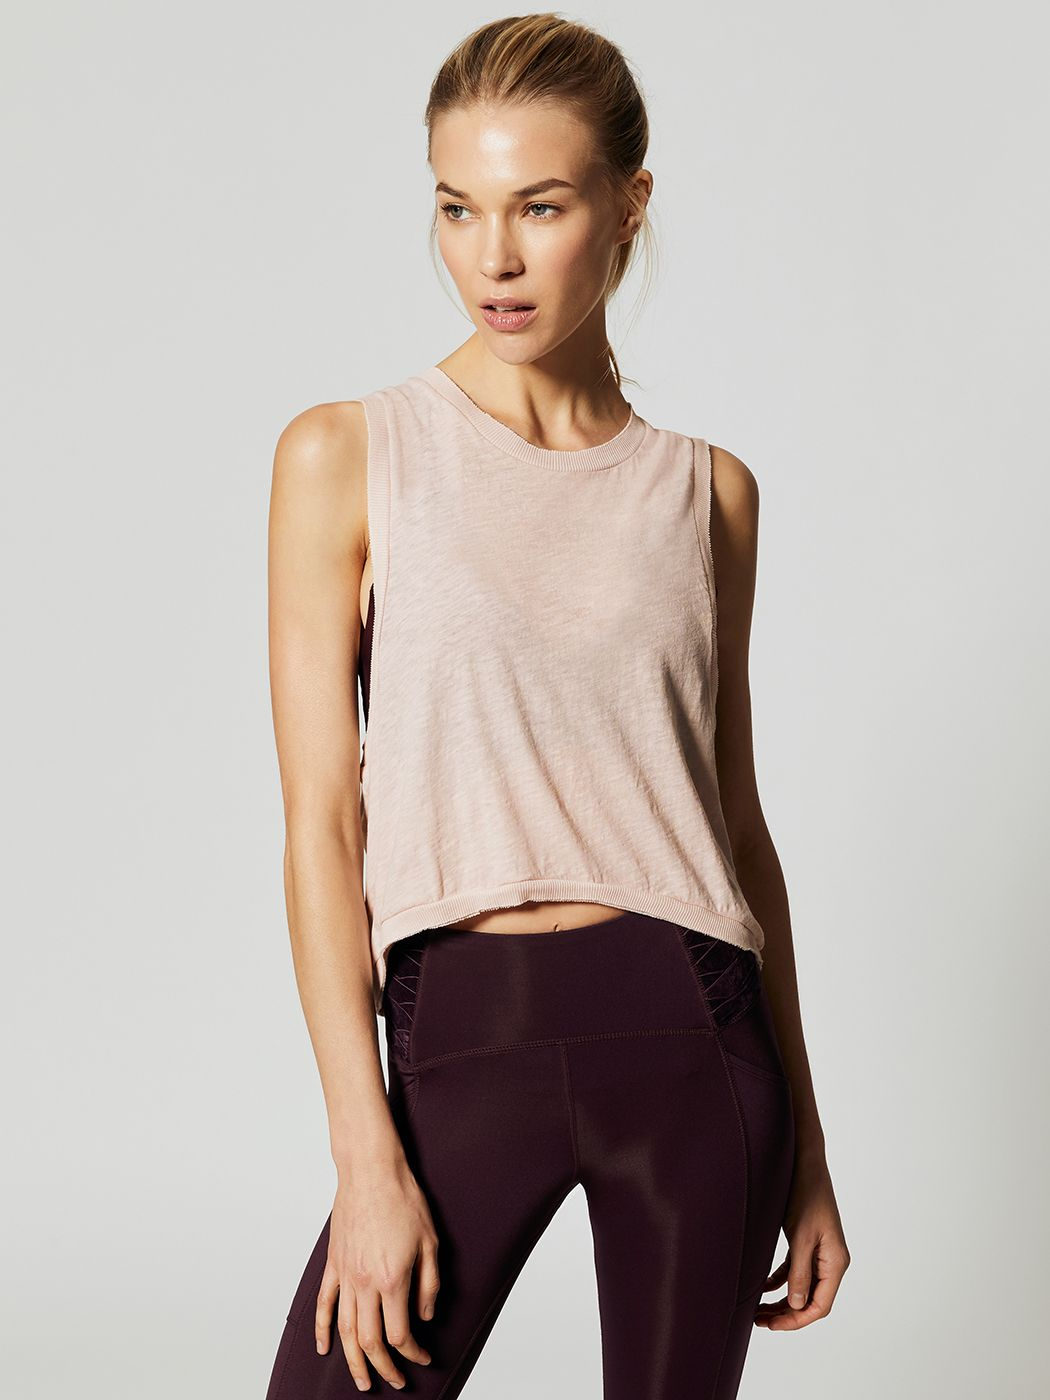 80e6701af5694 Free People Movement LOVE TANK - Taupe - Fashion Activewear Running